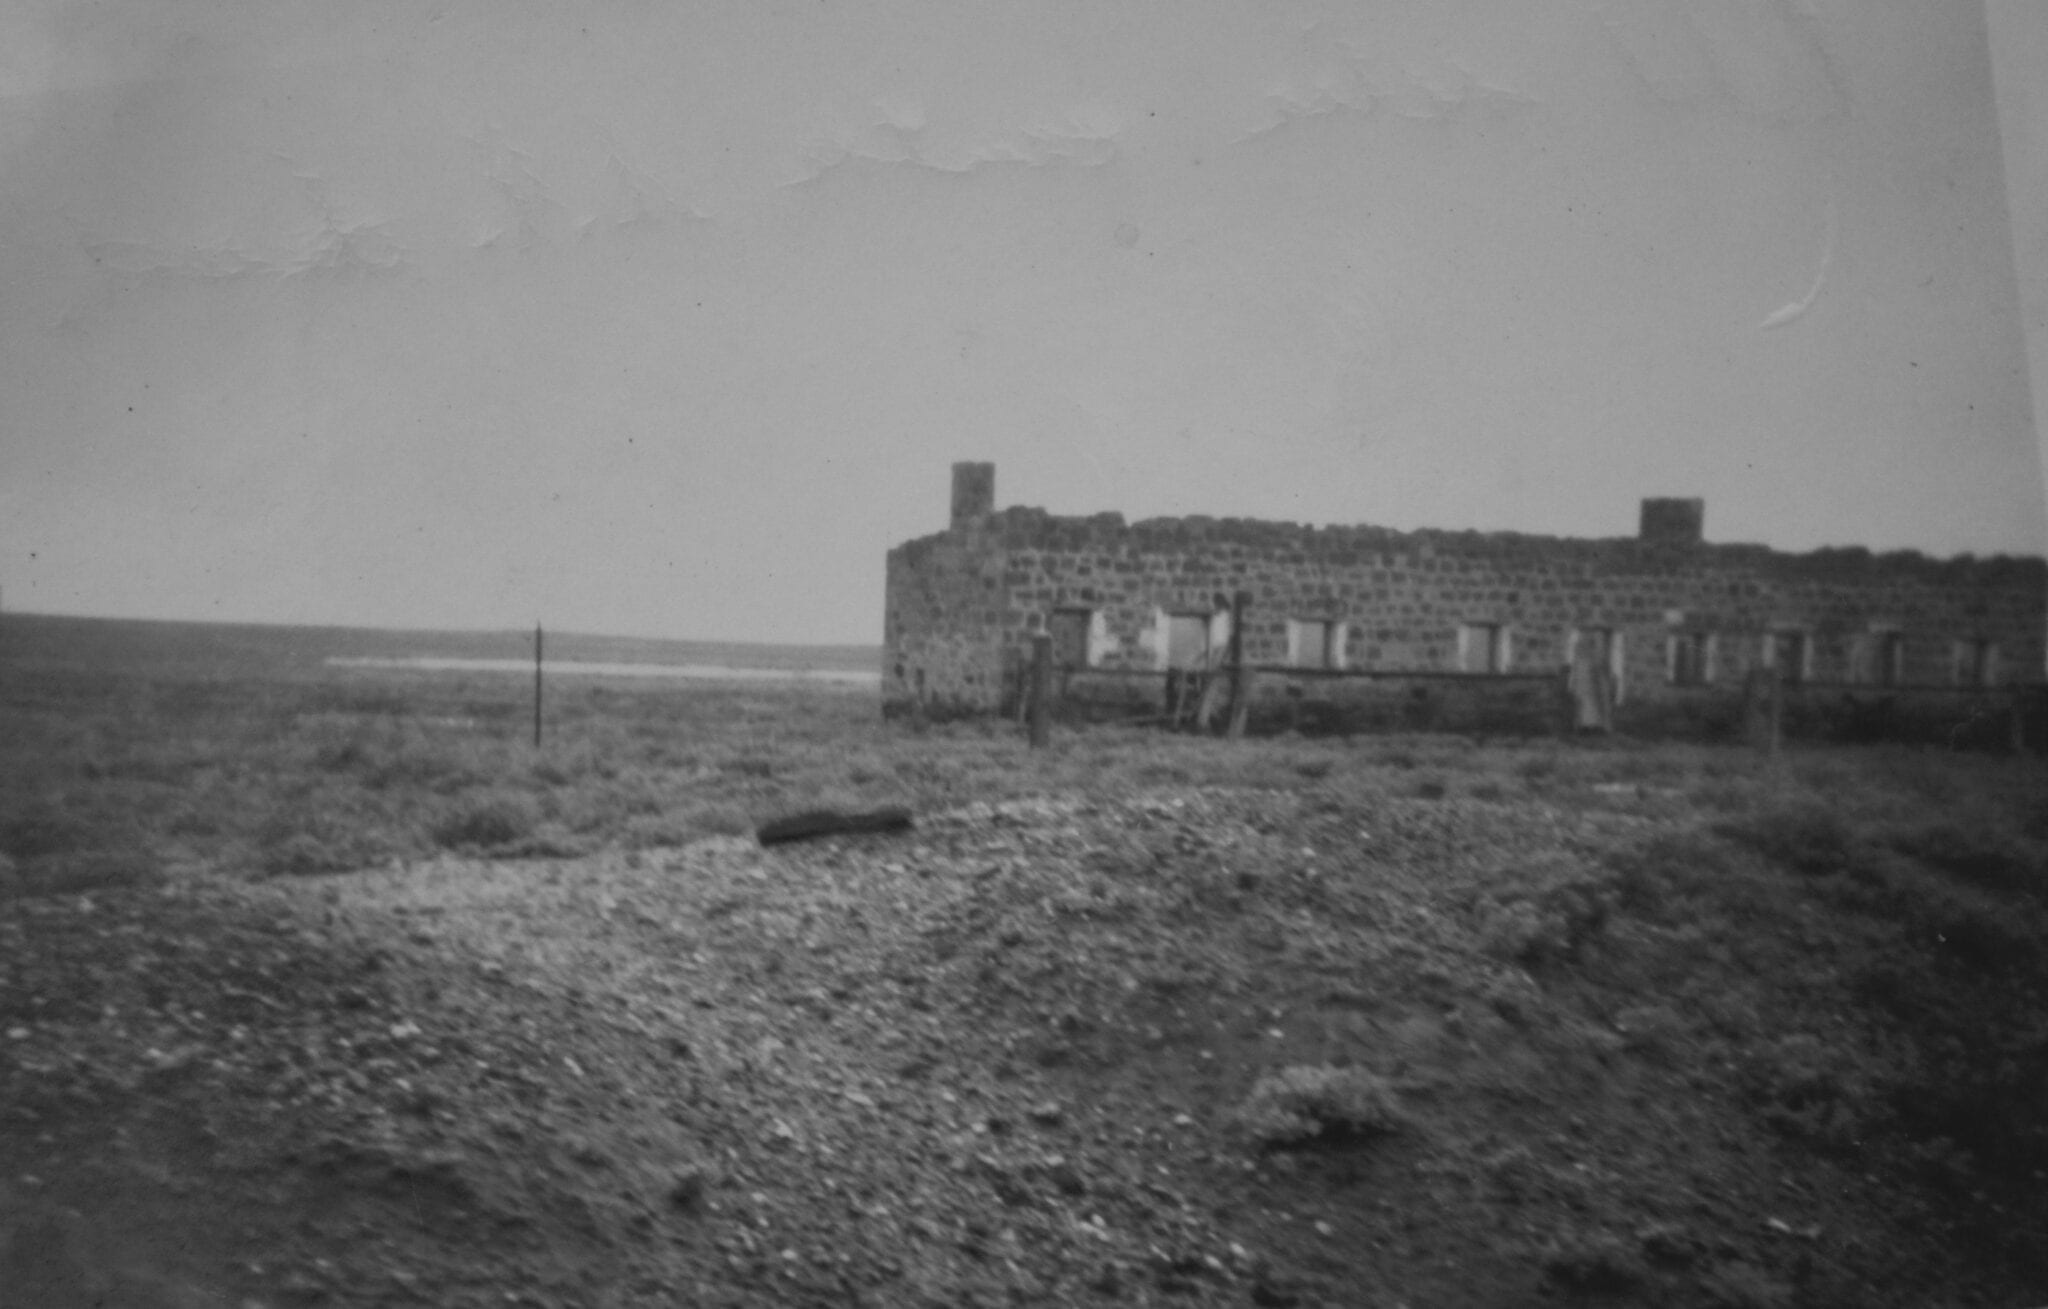 An abandoned rail building between Marree and Oodnadatta. Taken from the Old Ghan in 1950. Salt Lakes and Water.